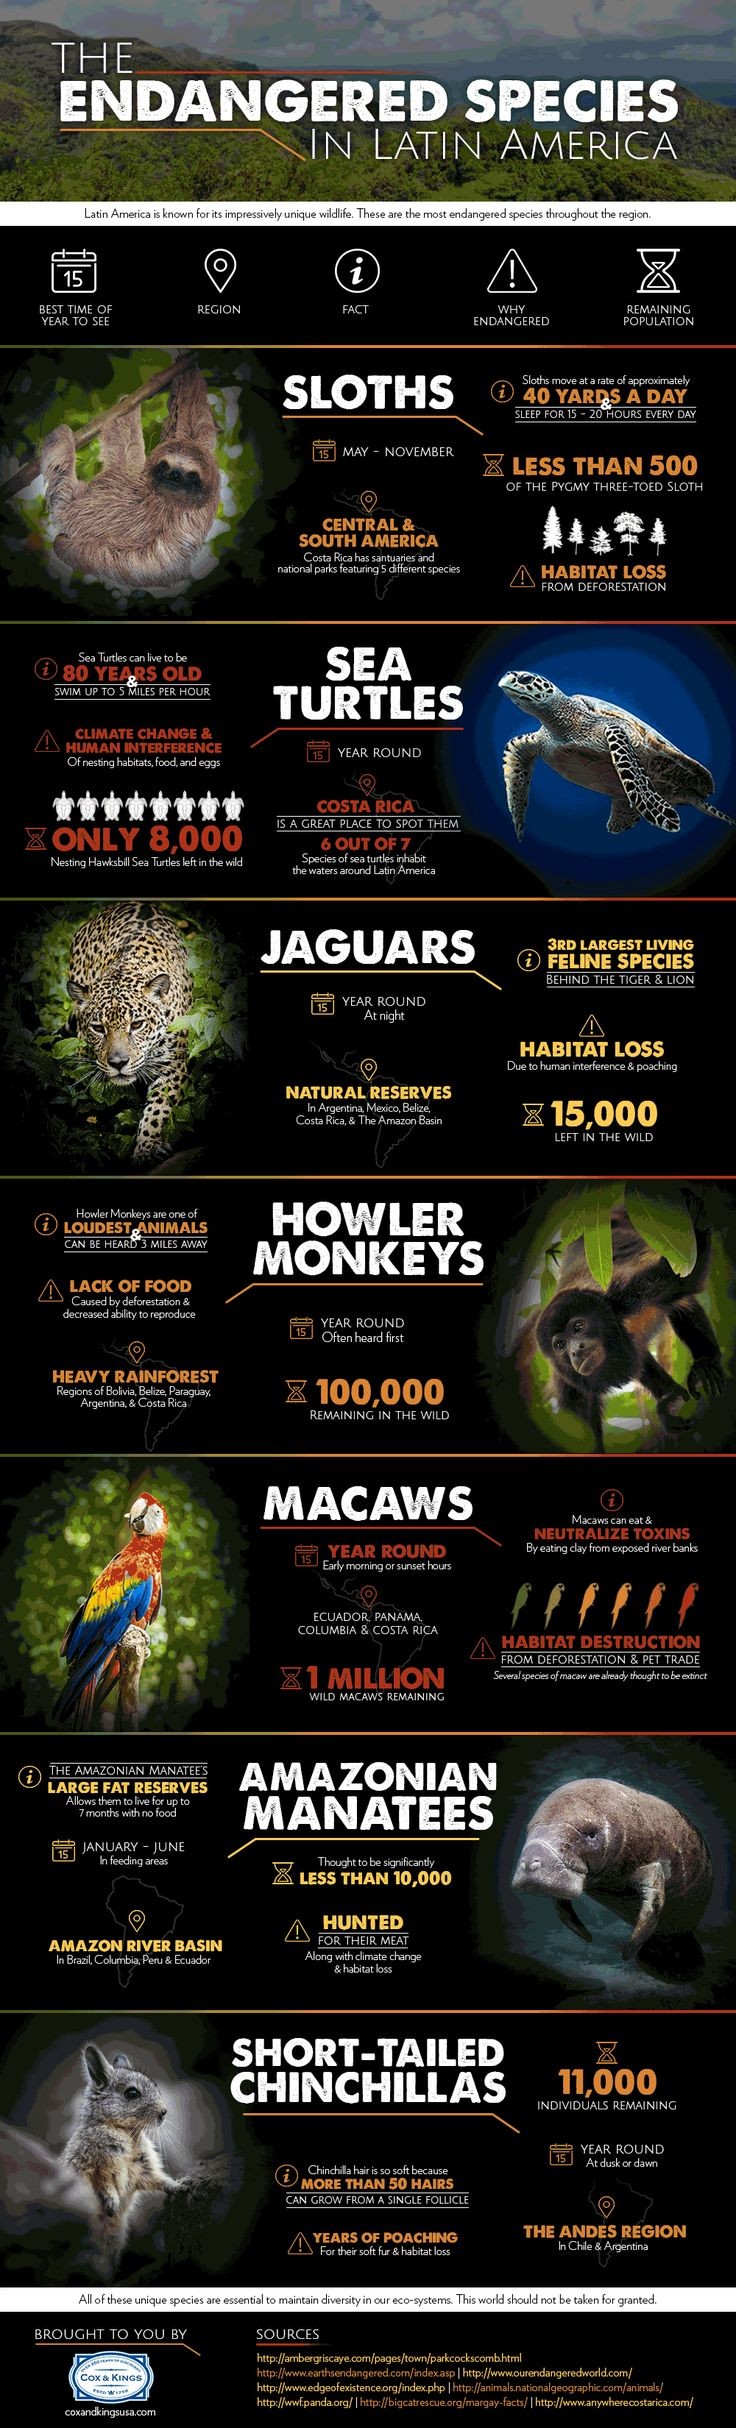 Zoology poster design - The Endangered Species In Latin America Infographic